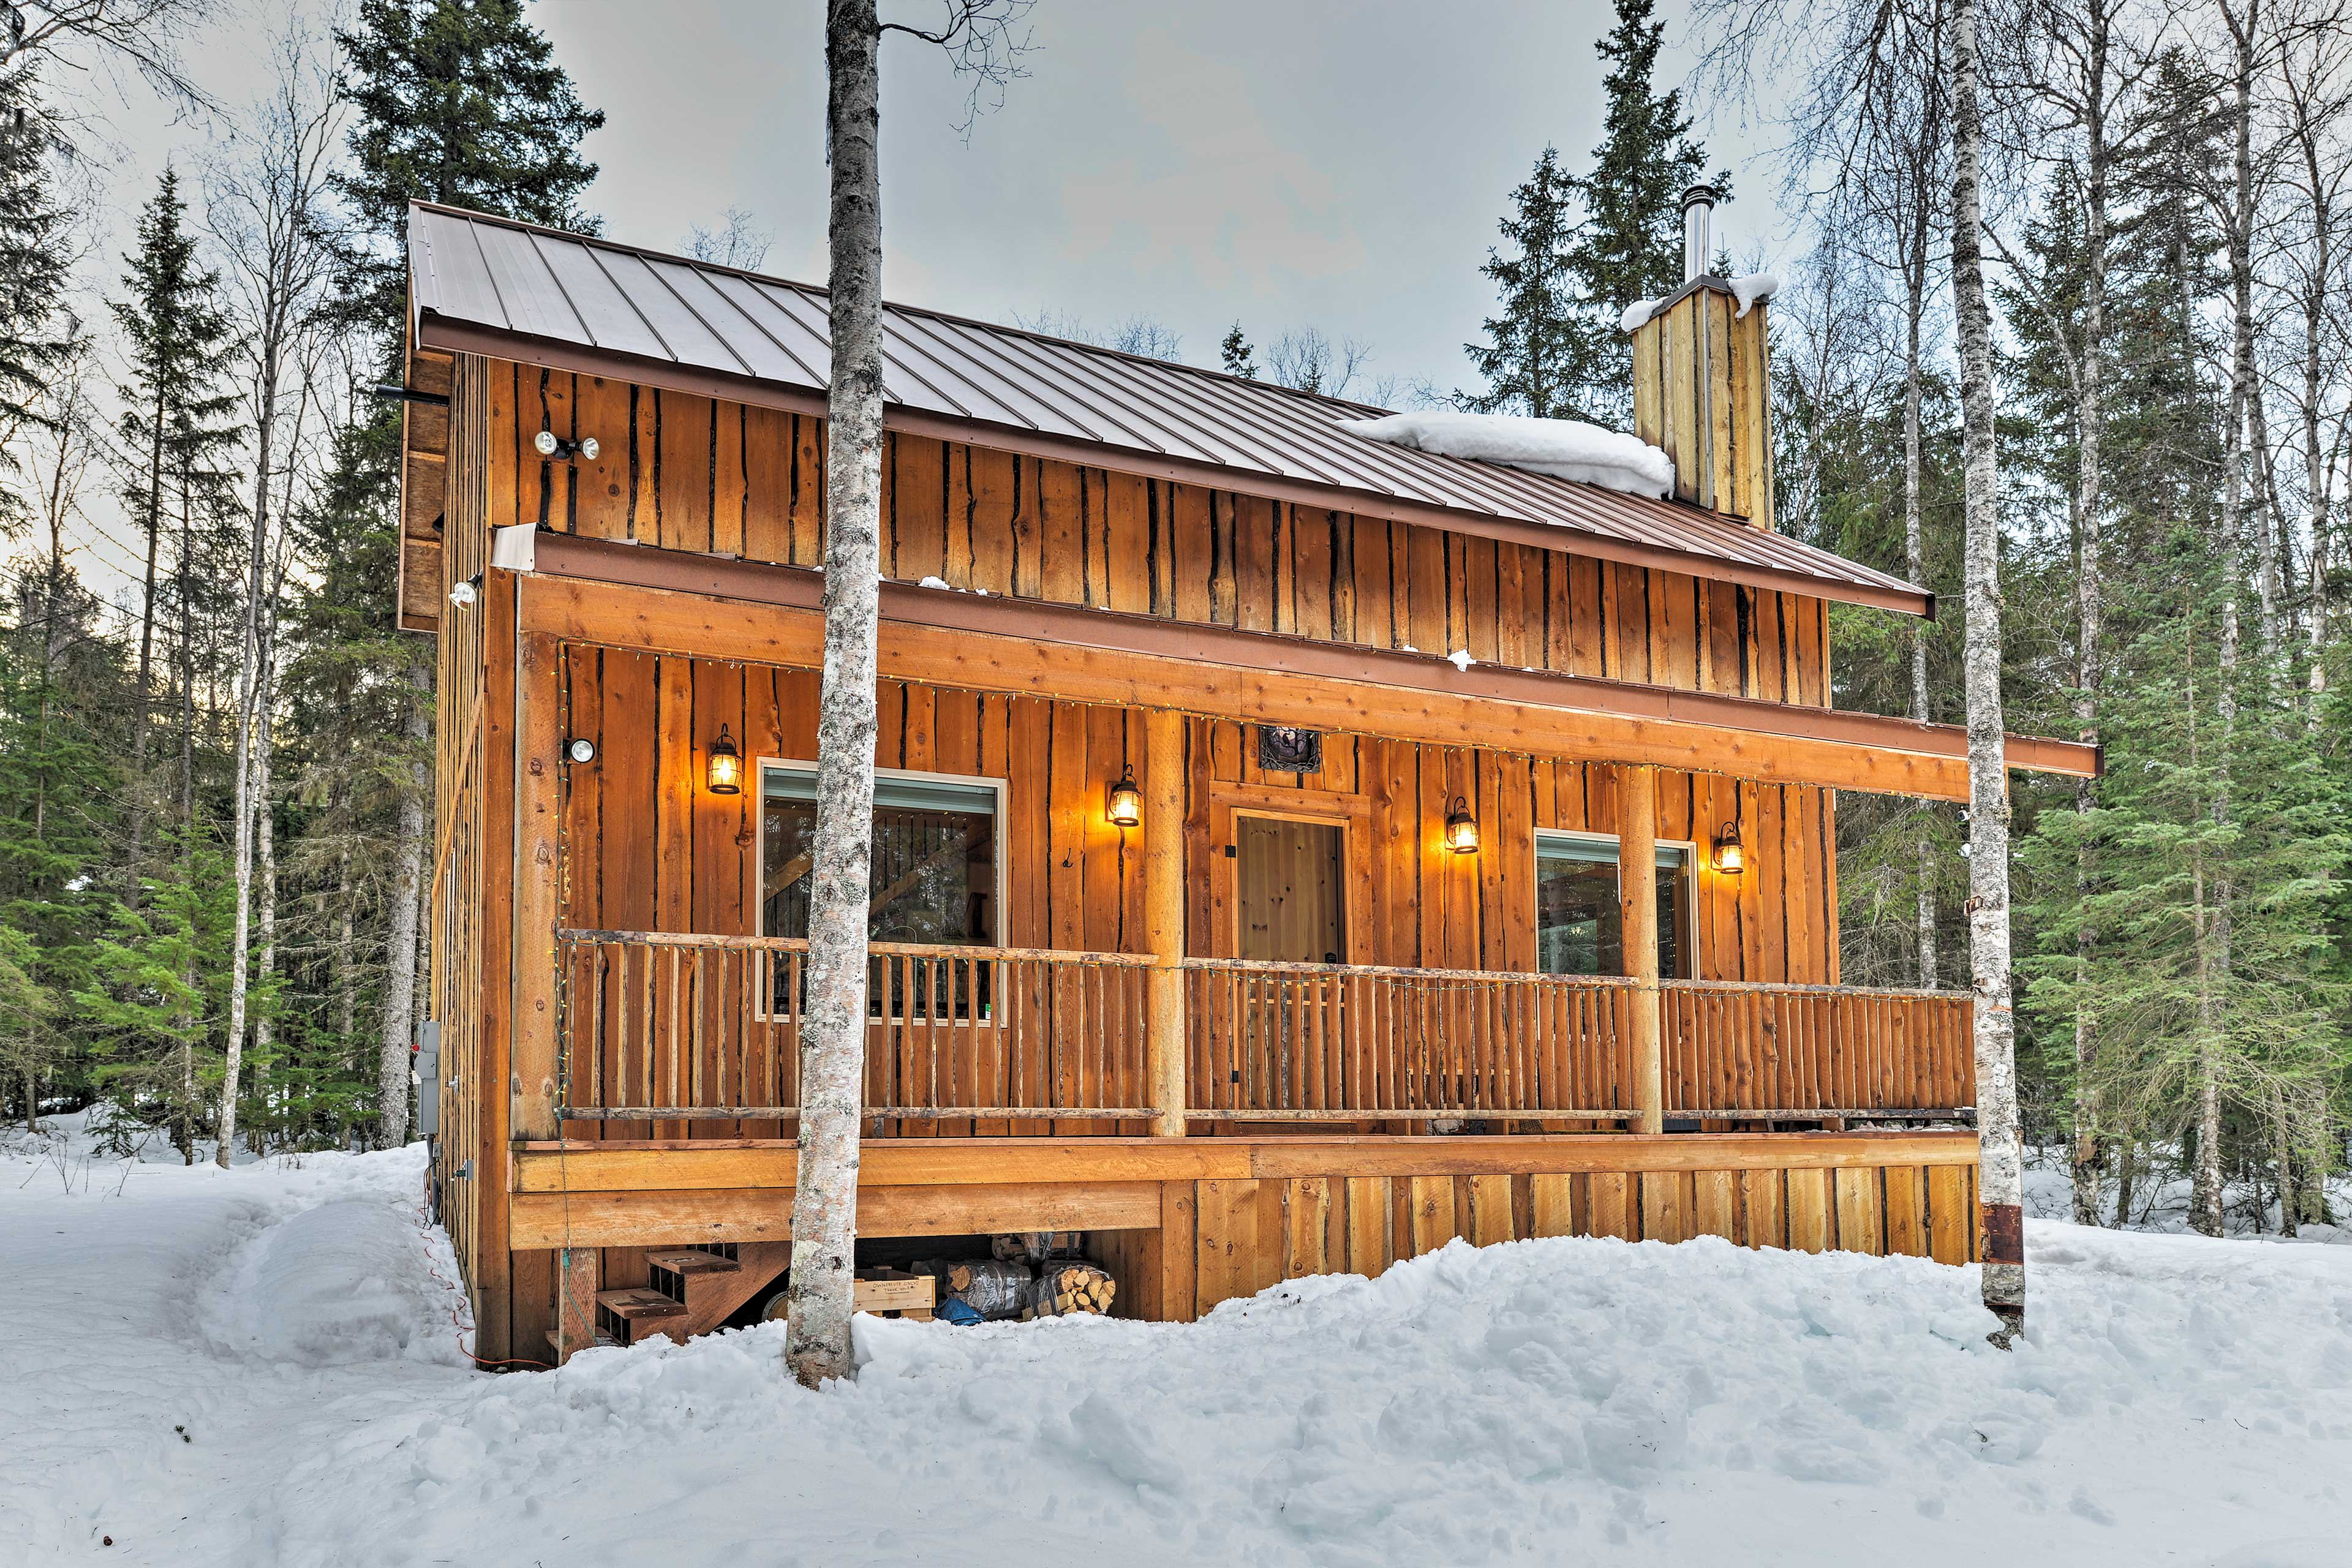 When snow falls in Alaska, the cabin sits in a winter wonderland.